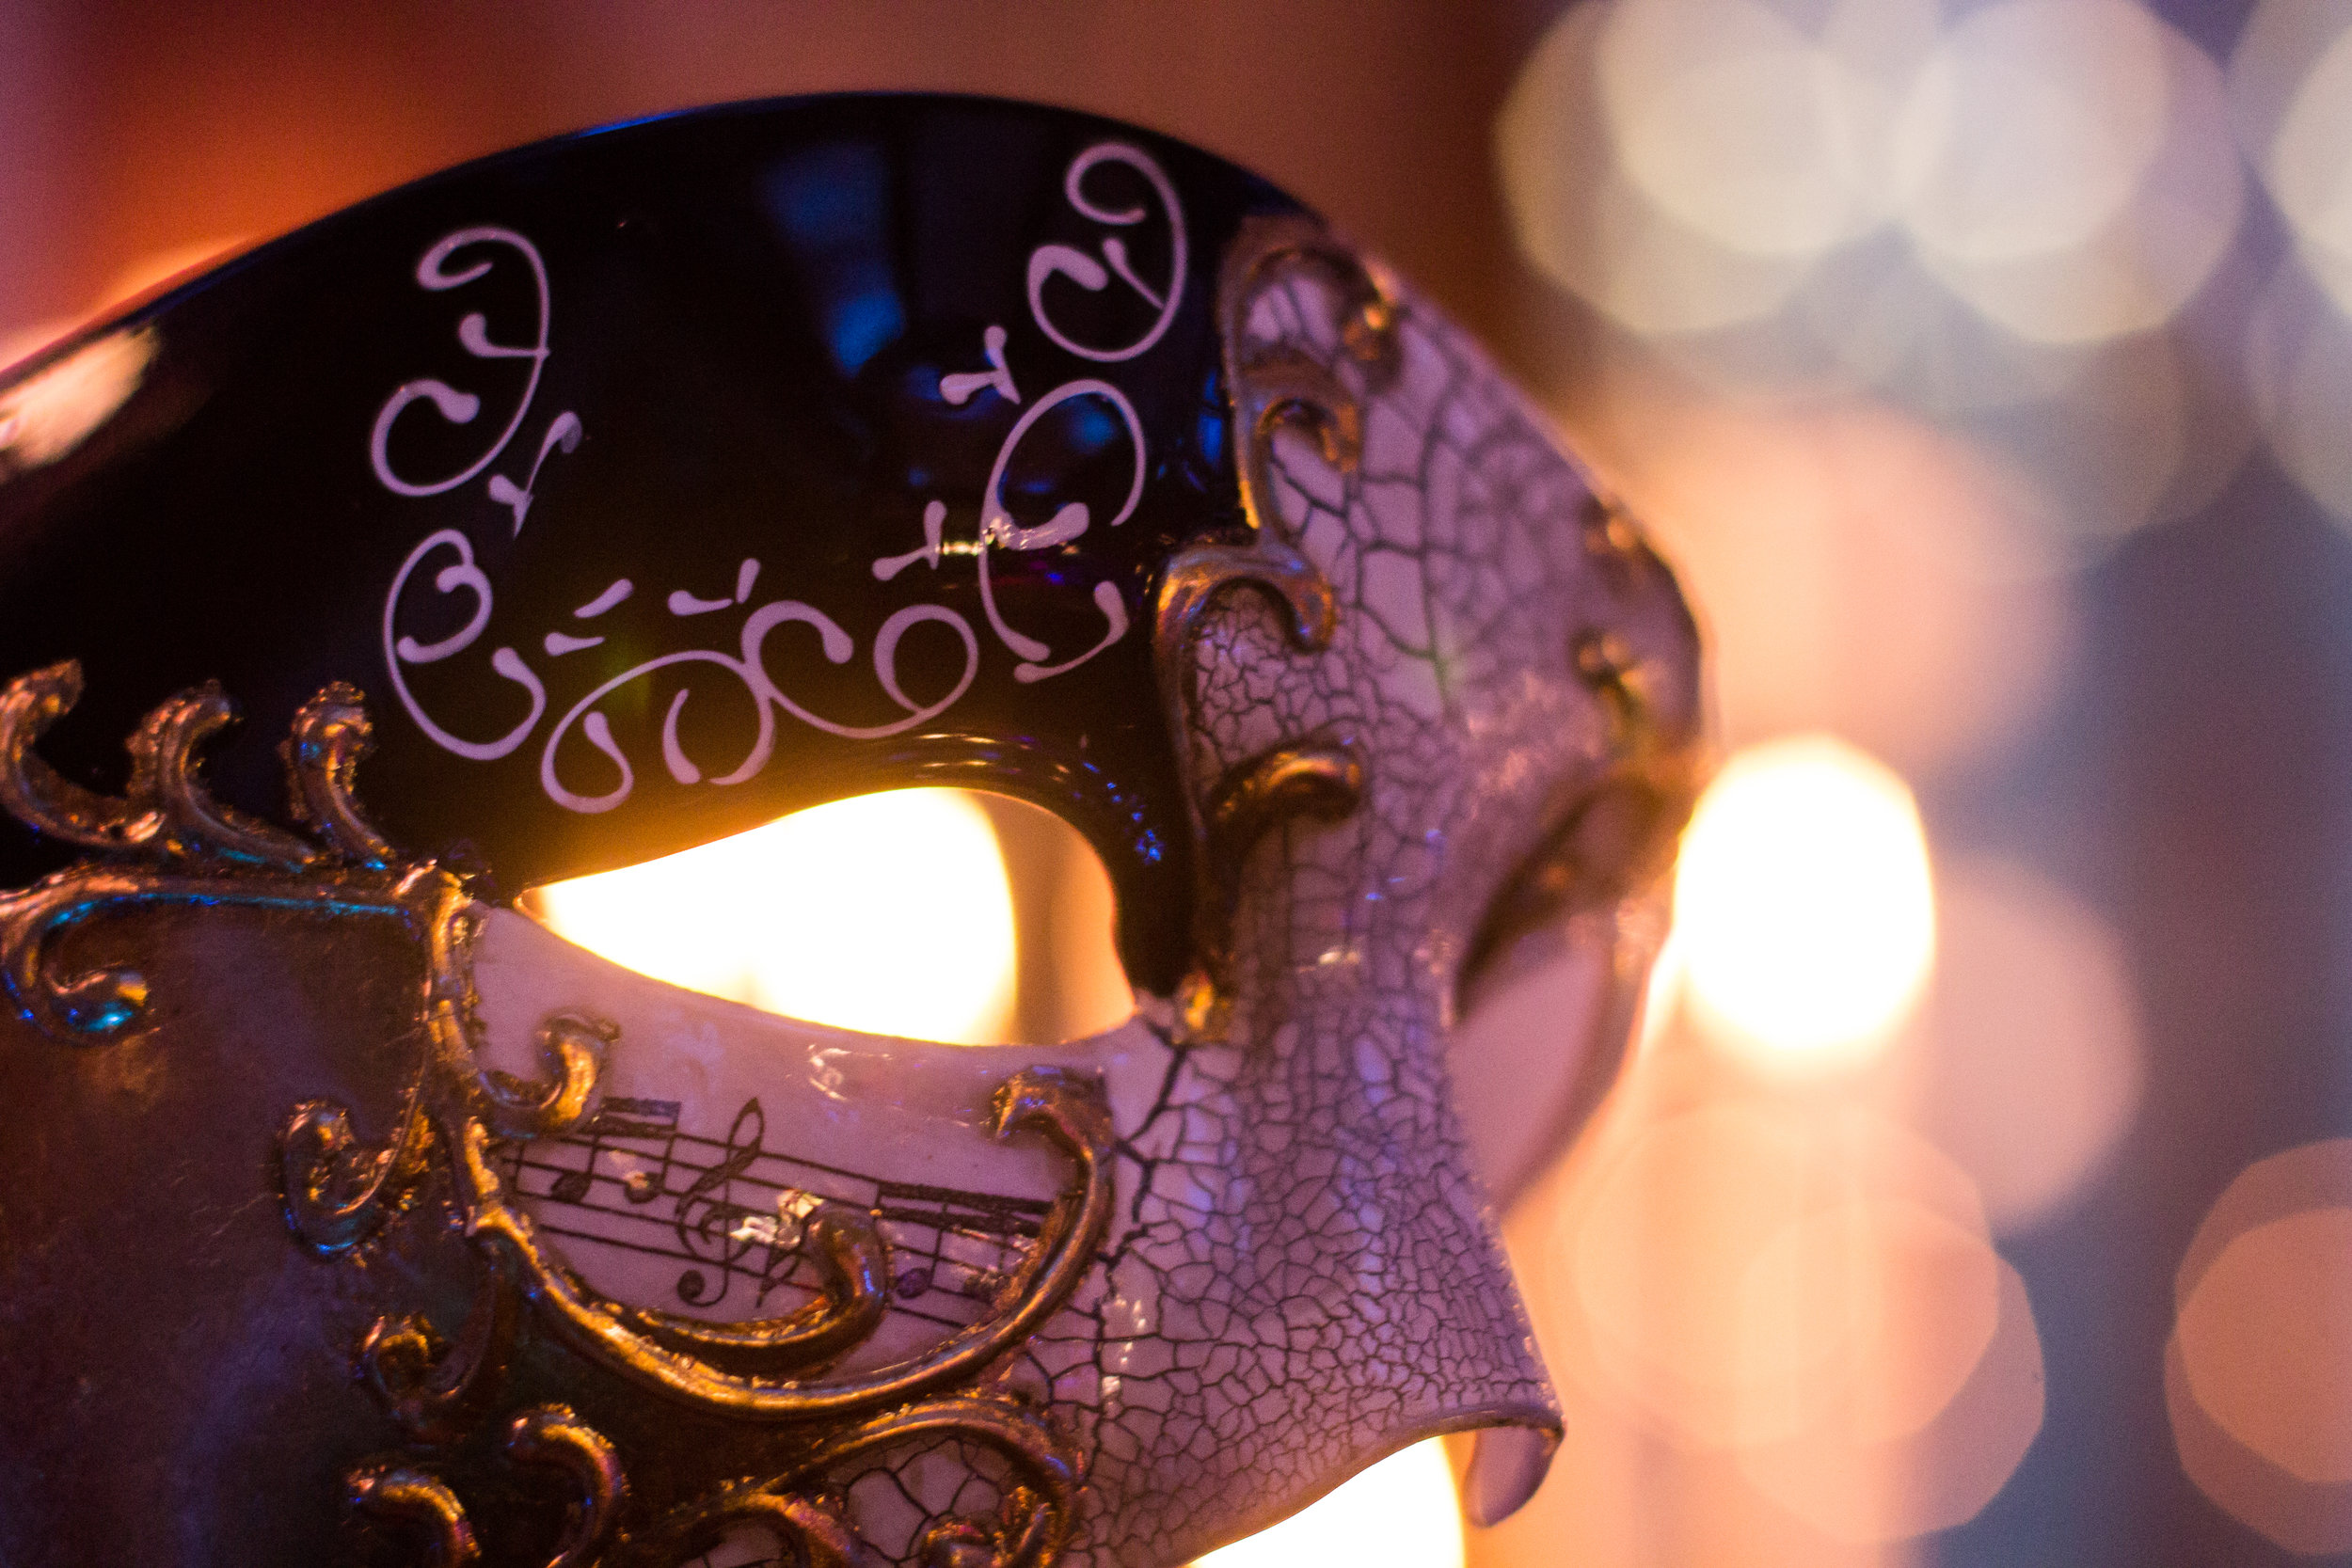 Masquerade magic with intricately decorated masks